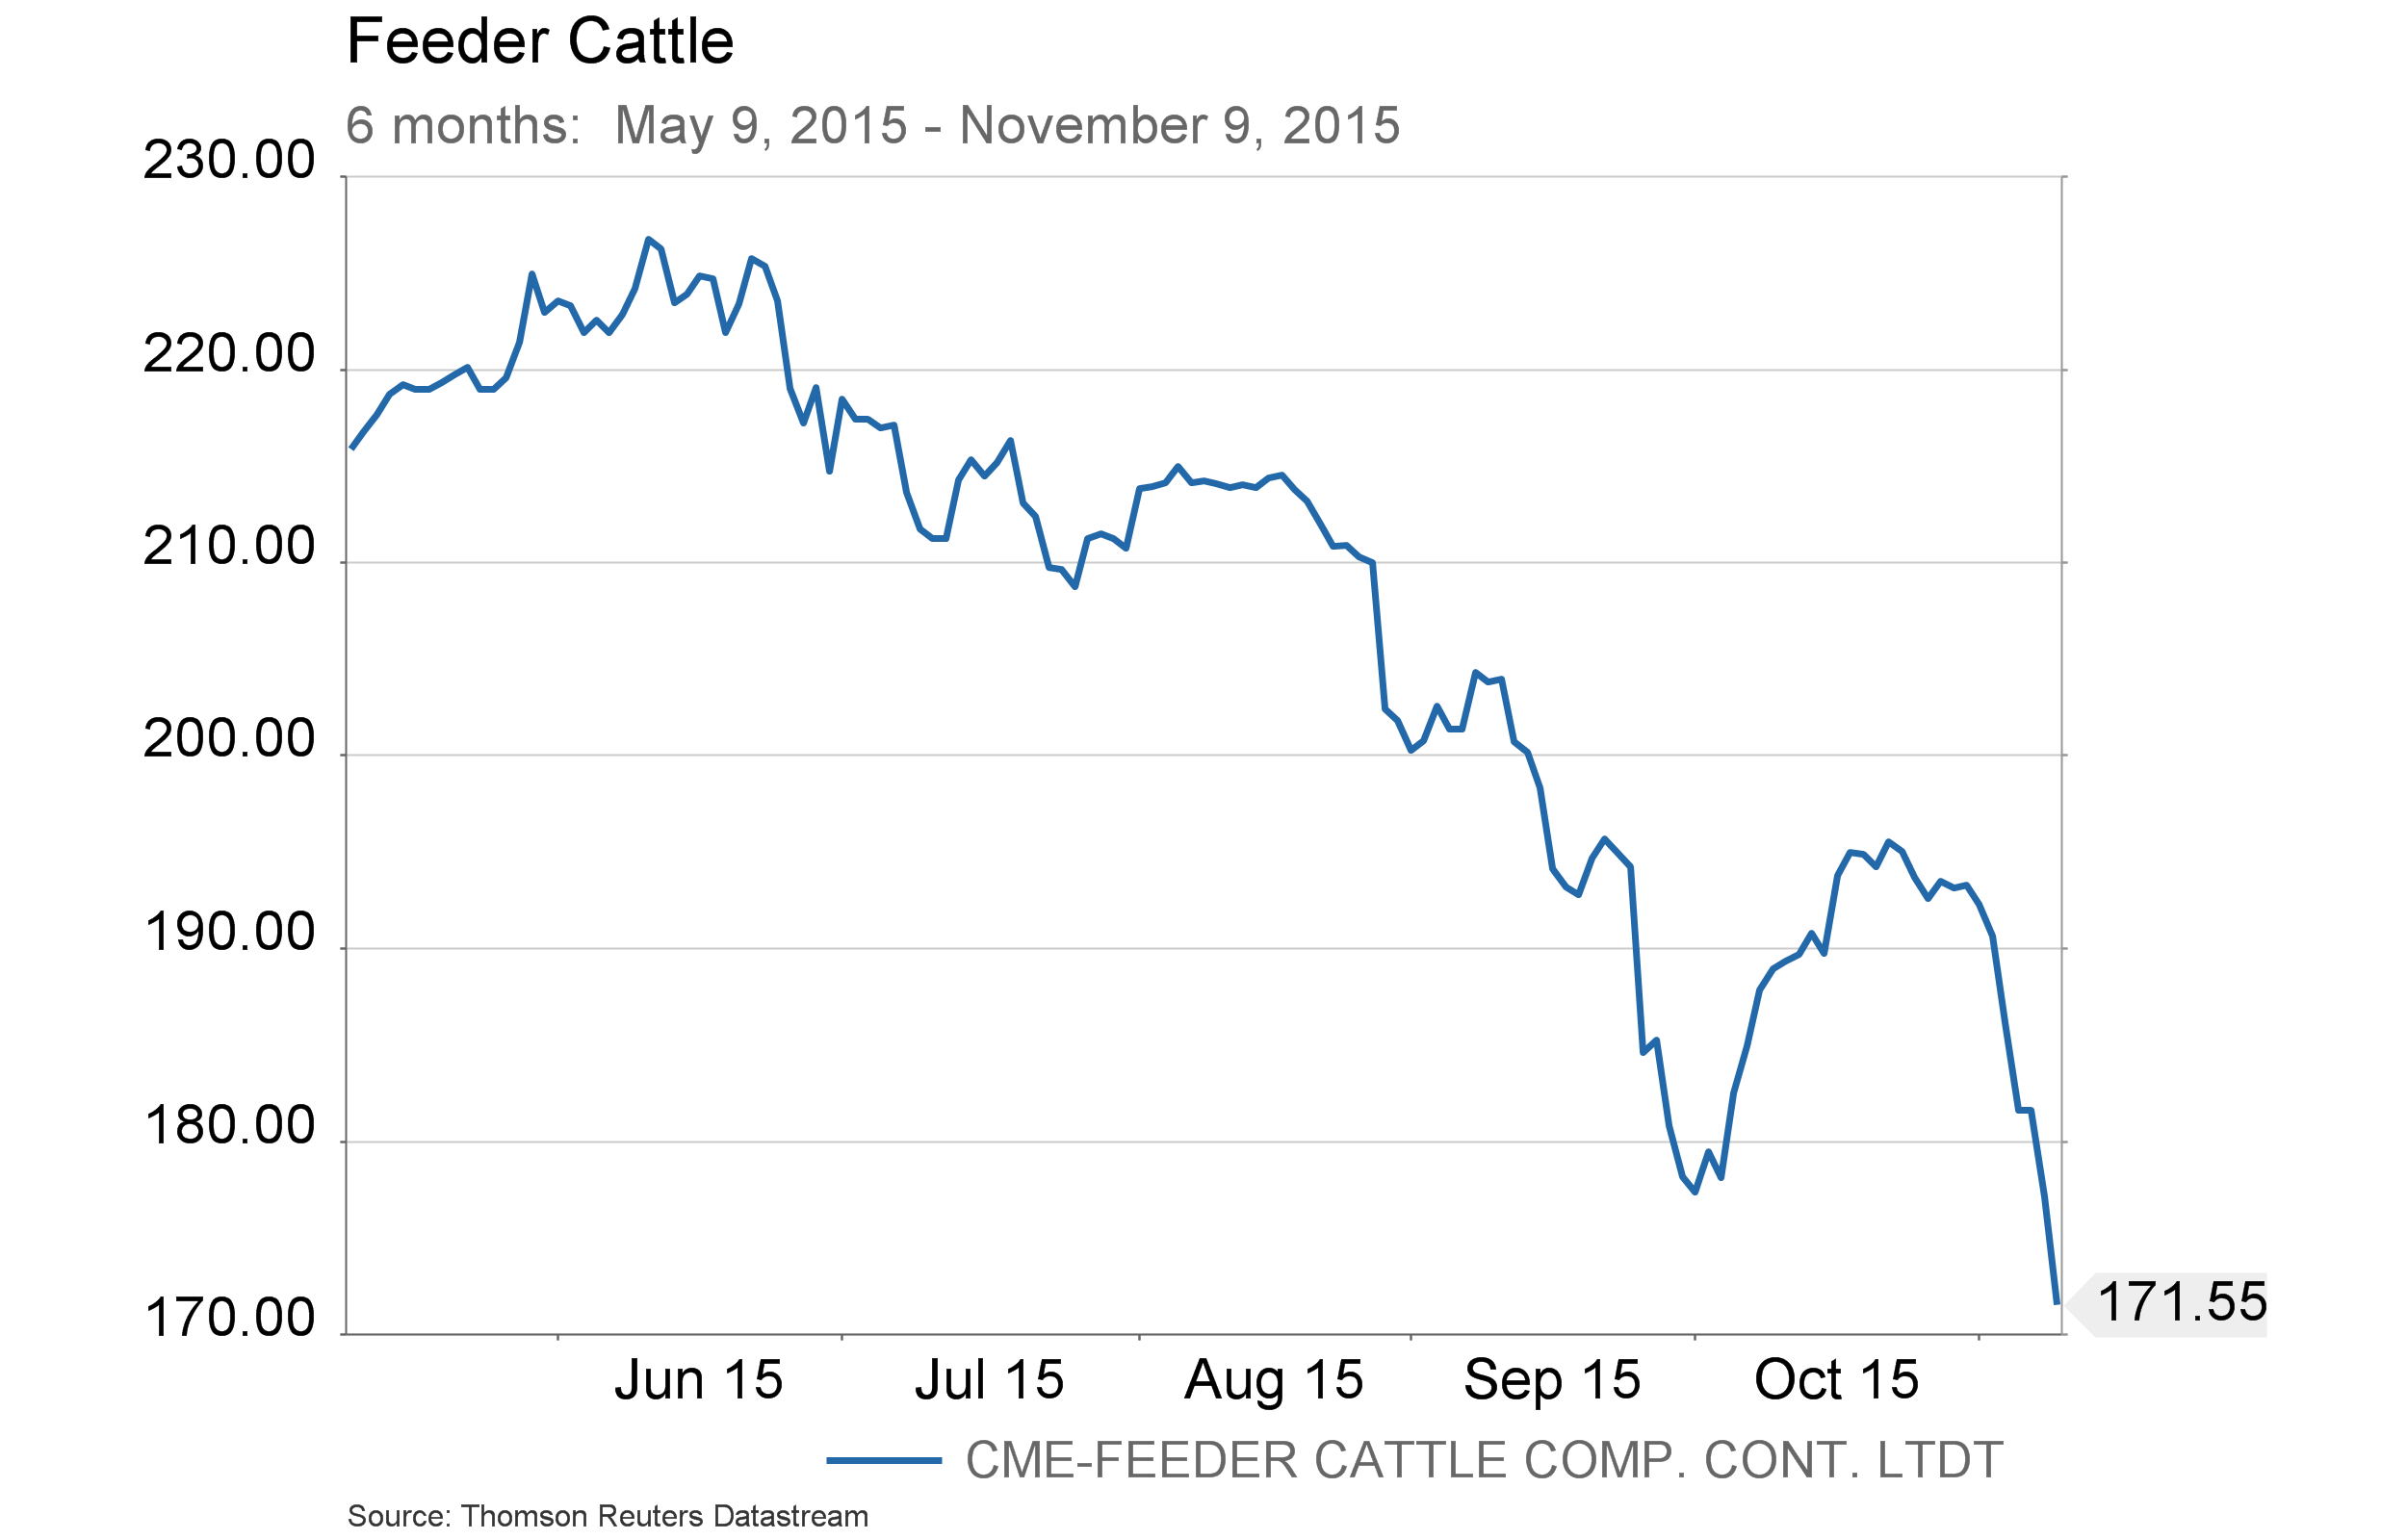 Conference Call charts - Feeder Cattle - 2 - 6 months